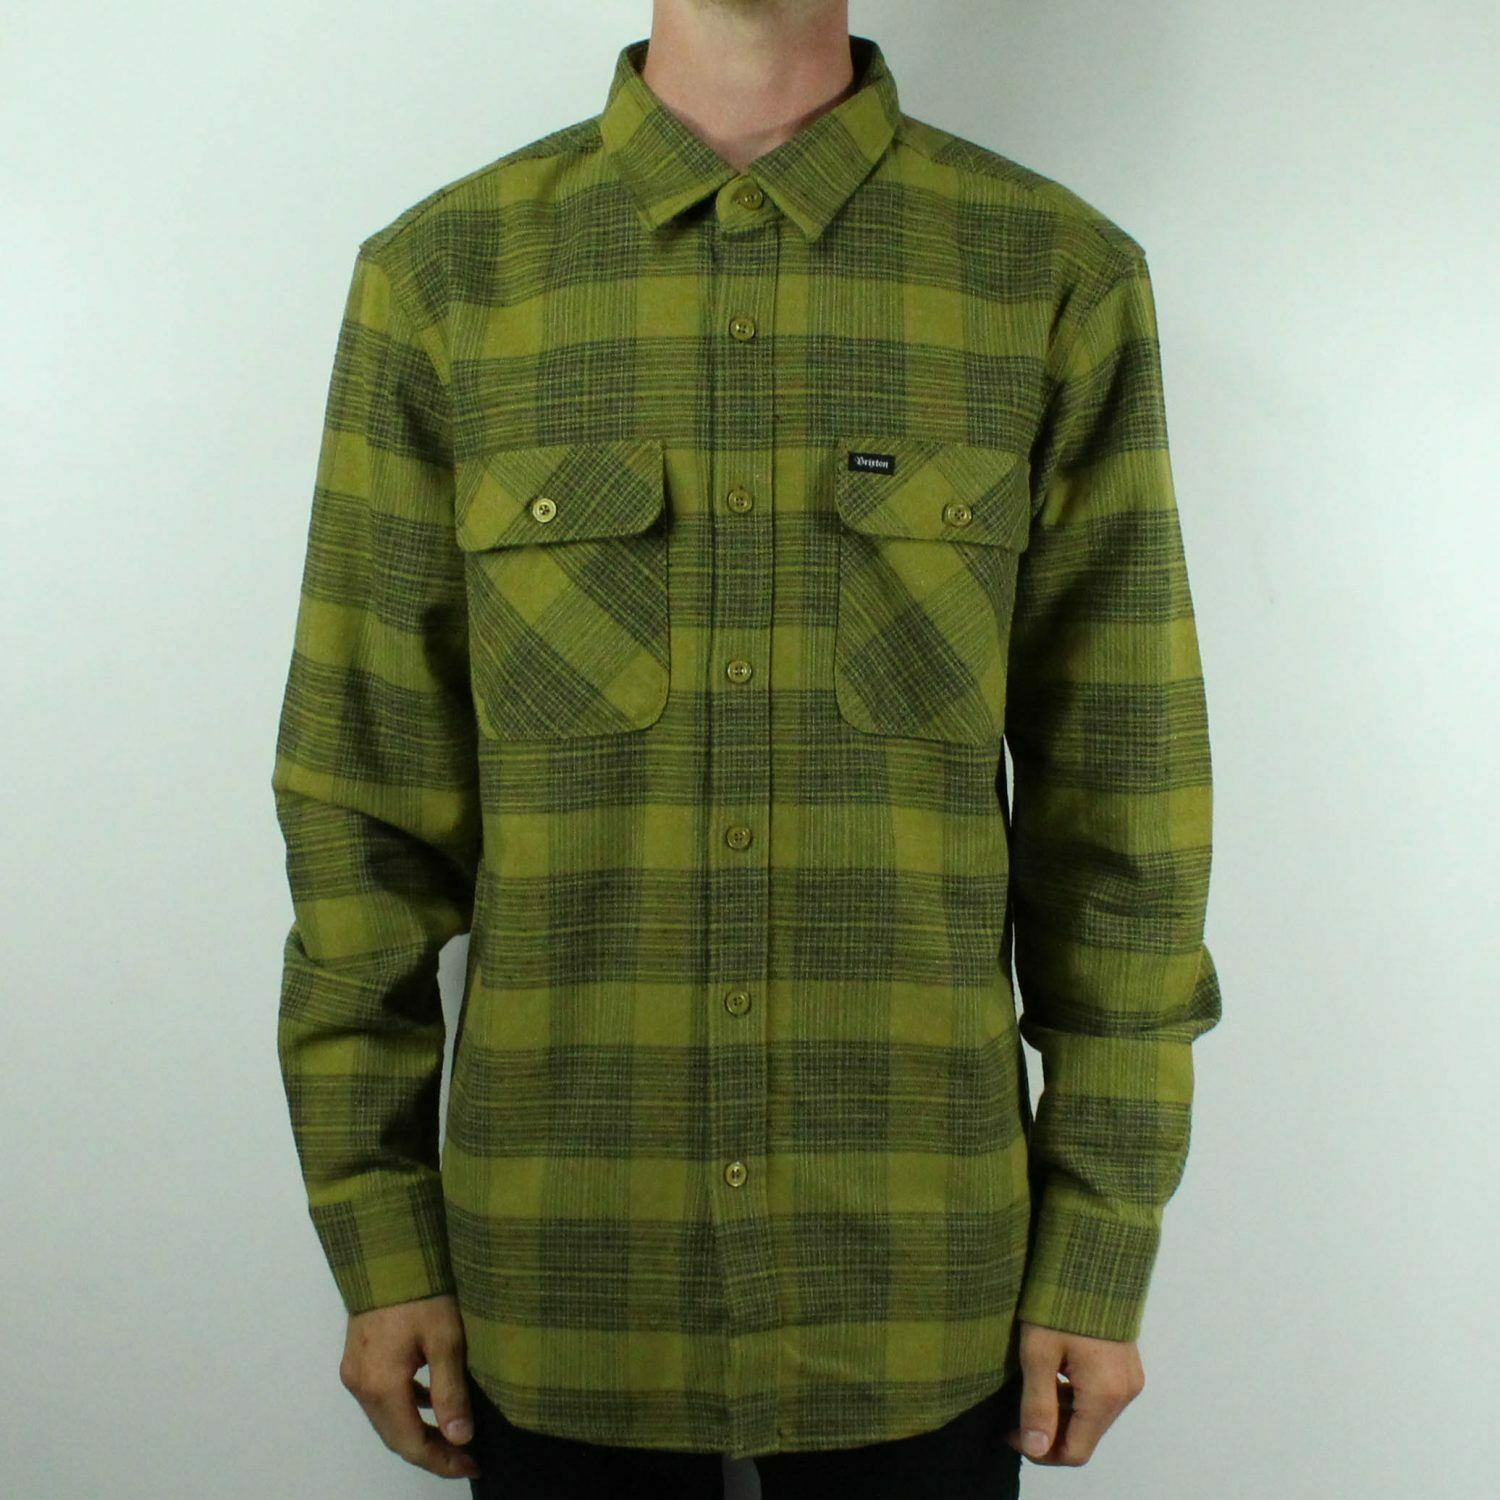 Brixton Bowery L S Flannel Long Sleeve Smart Shirt  – Avacado in Size S M L